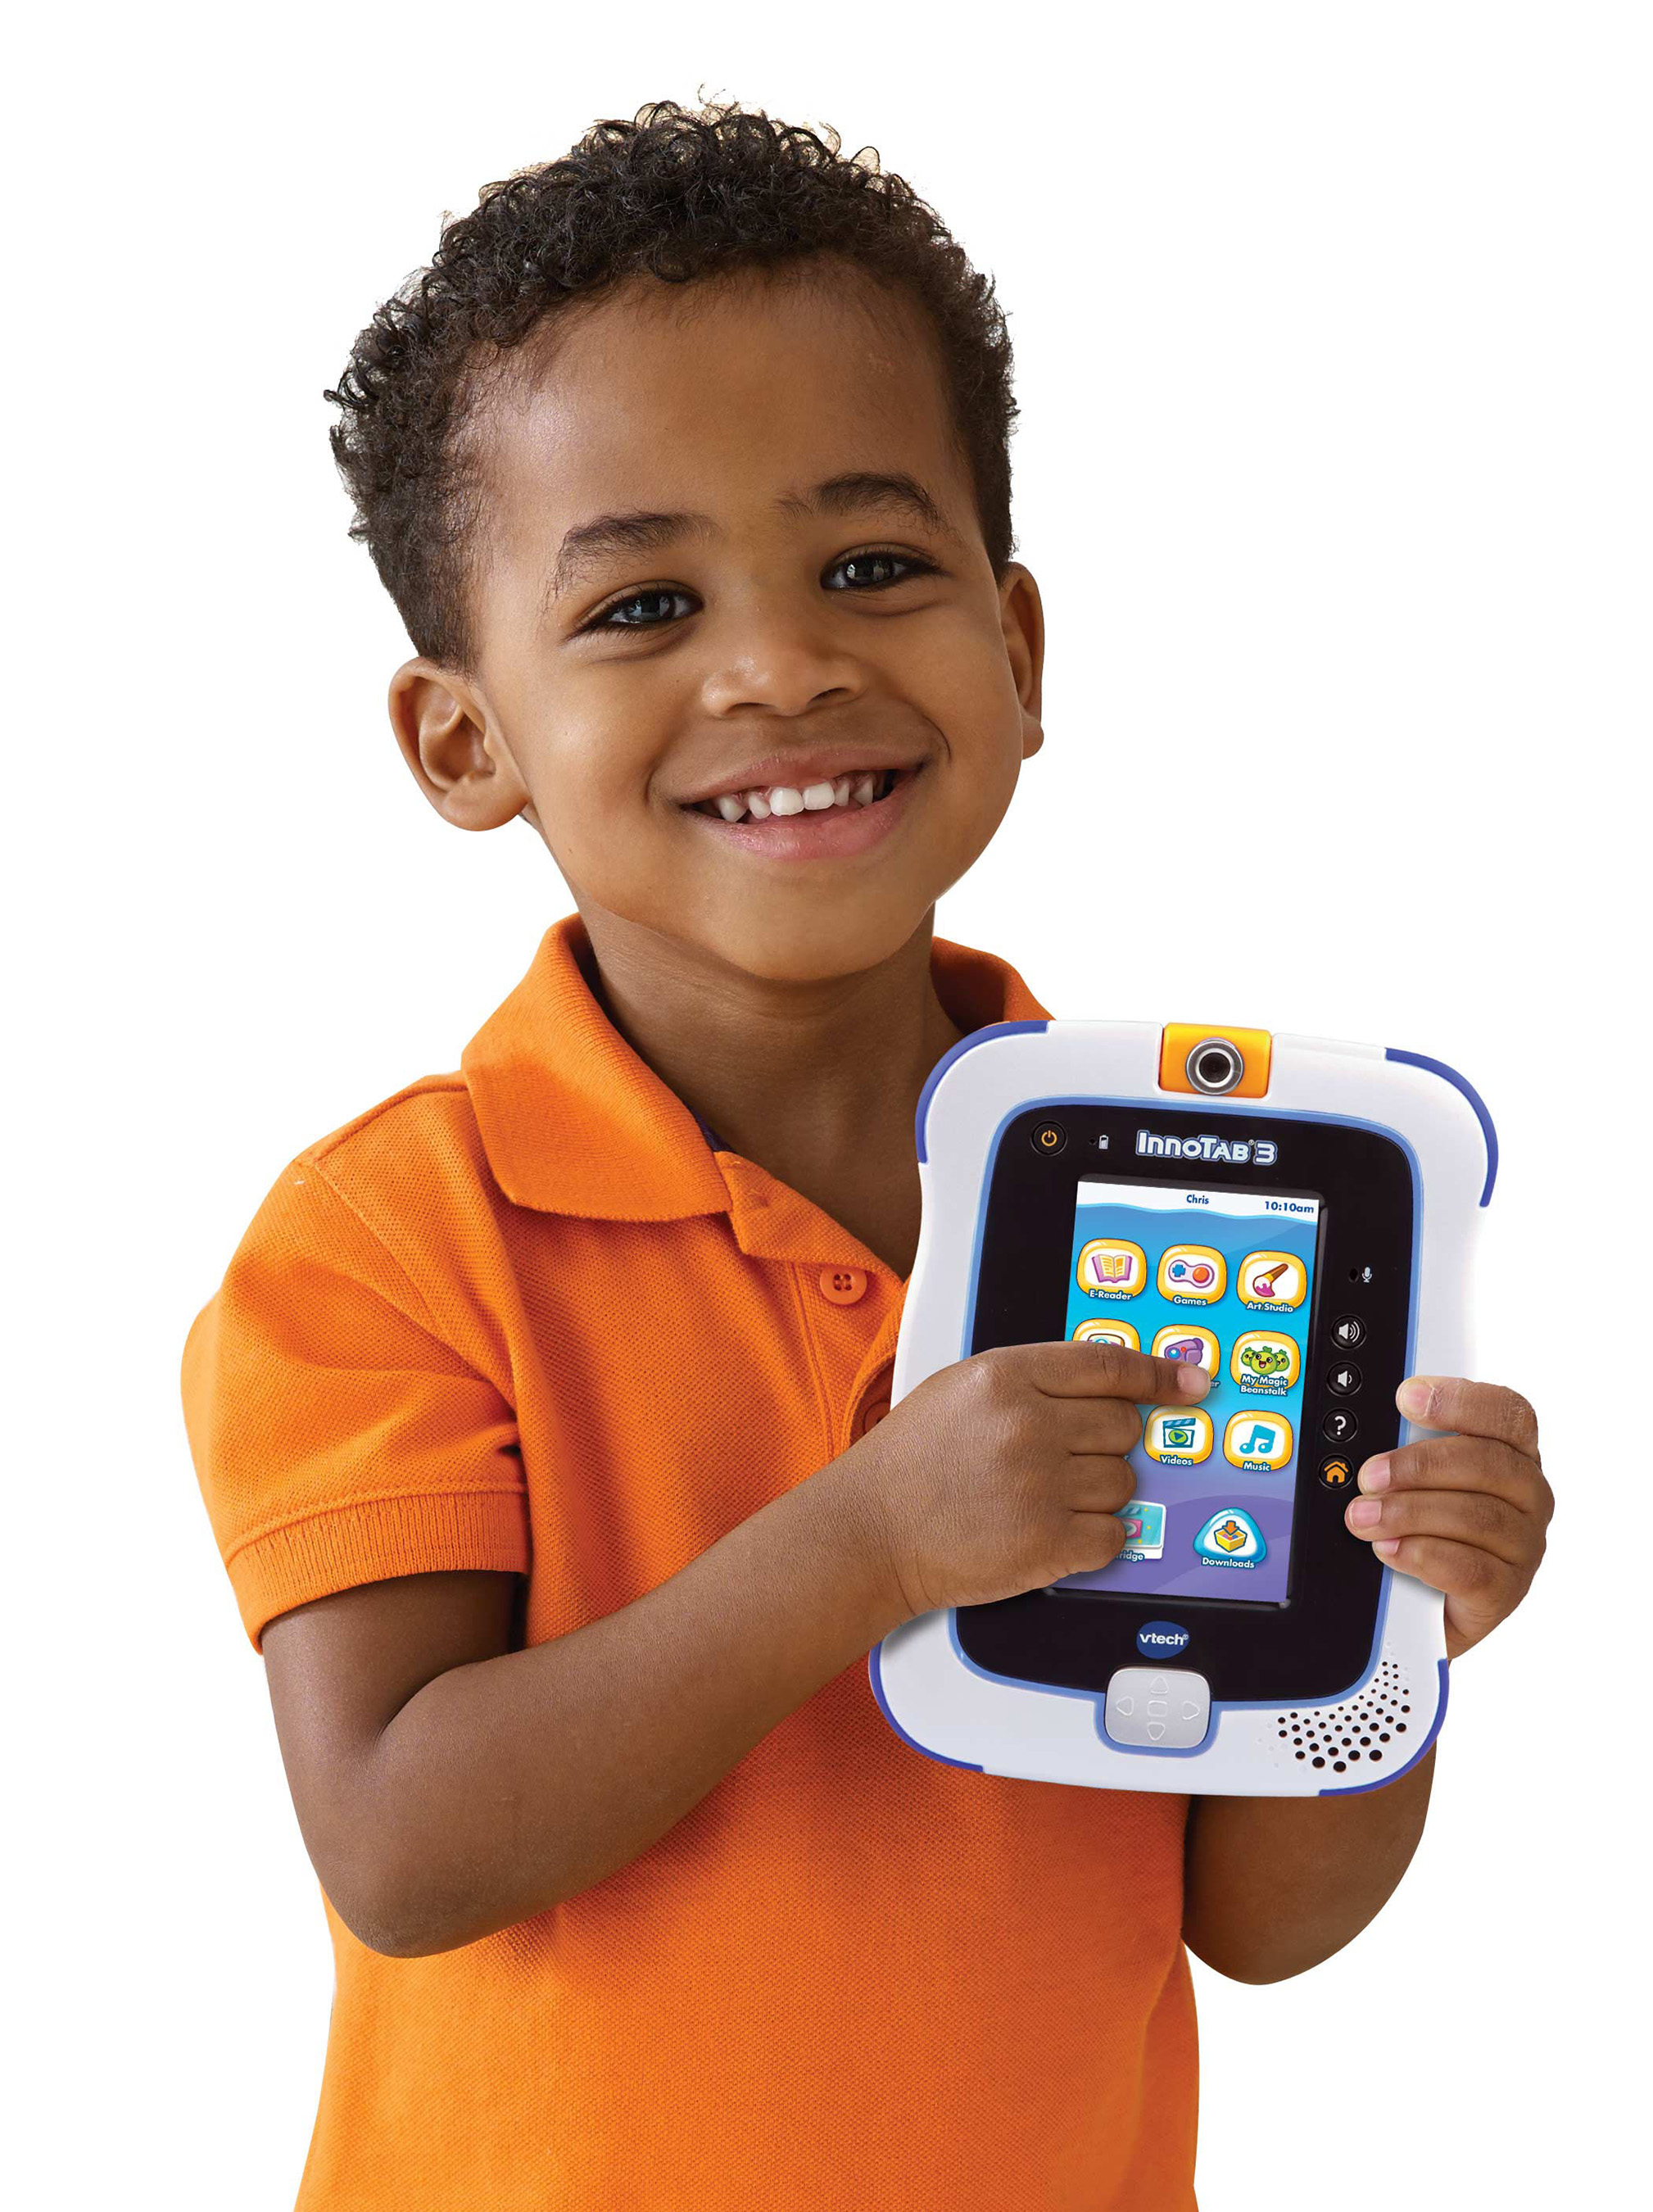 VTech®'s value-packed 4th generation children's learning tablet InnoTab® 3 Plus now available